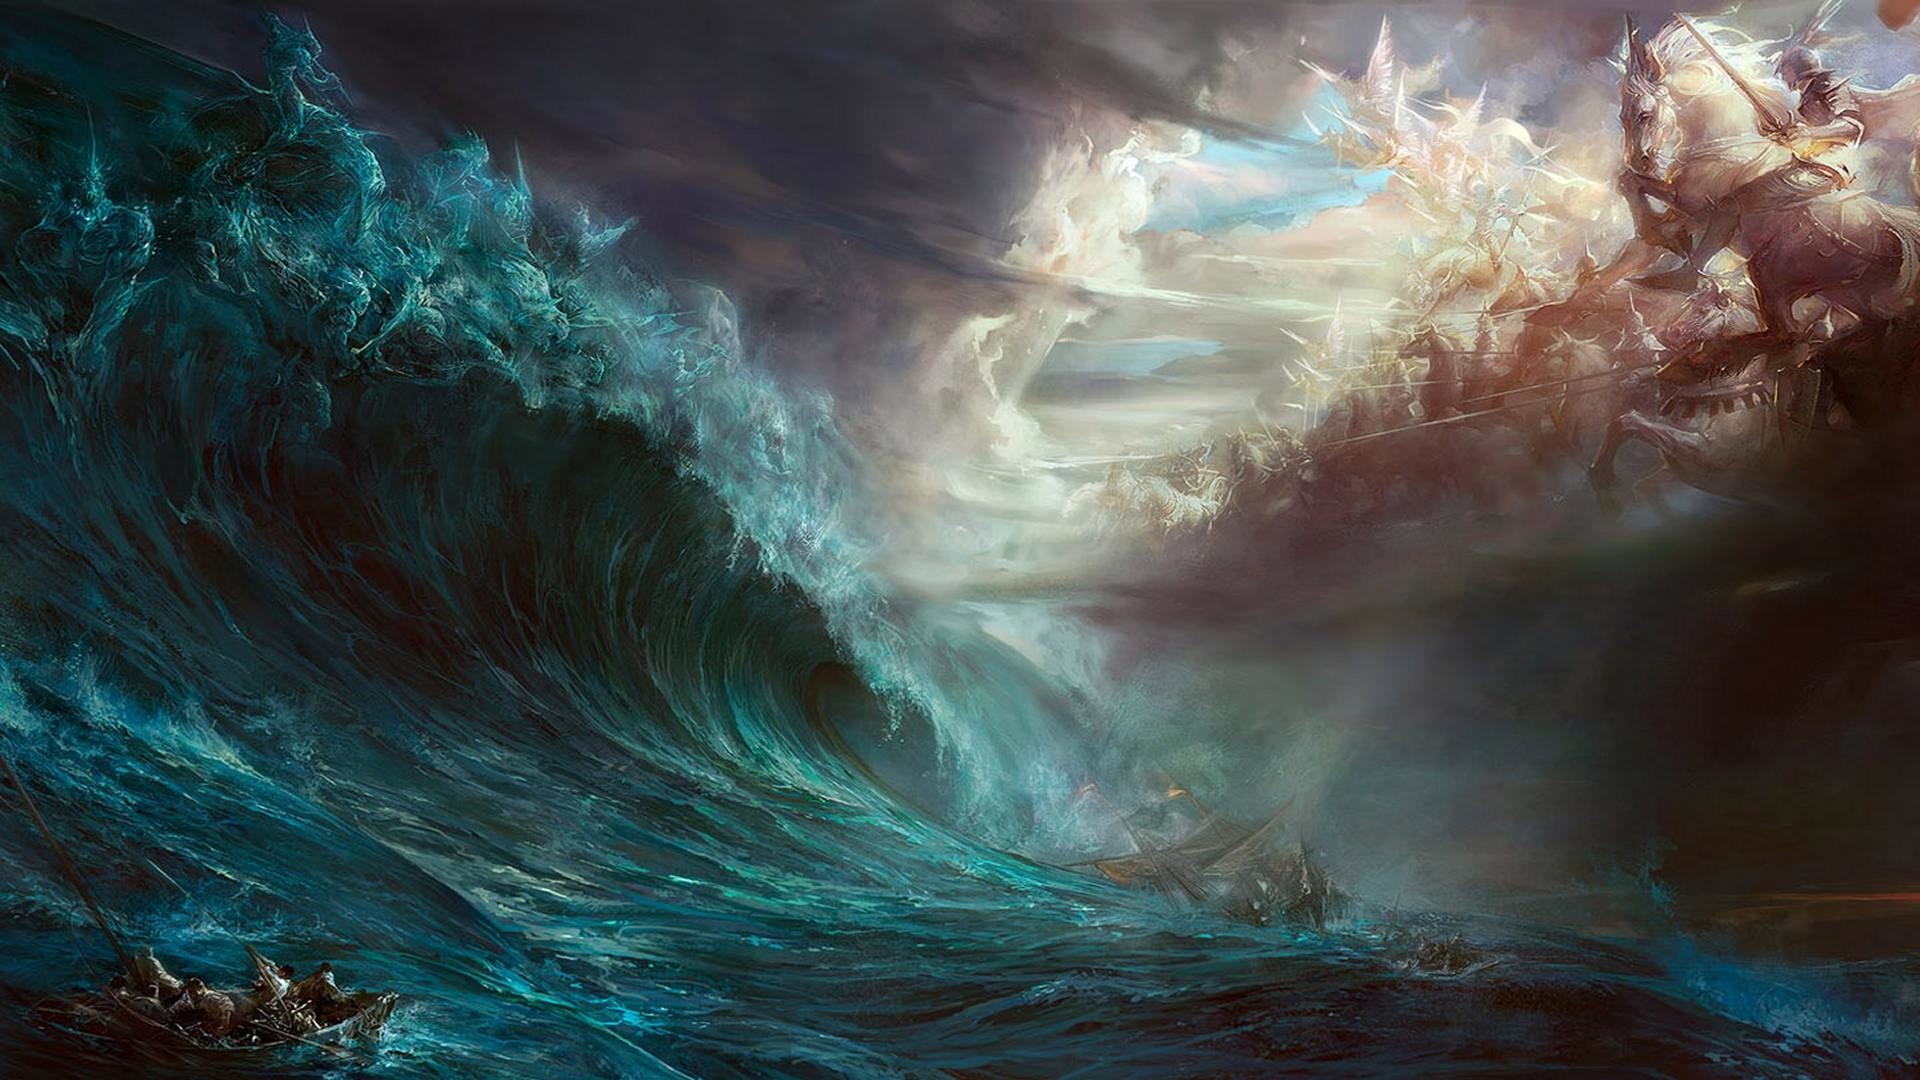 Explore Stormy Sea, Desktop Wallpapers, and more!